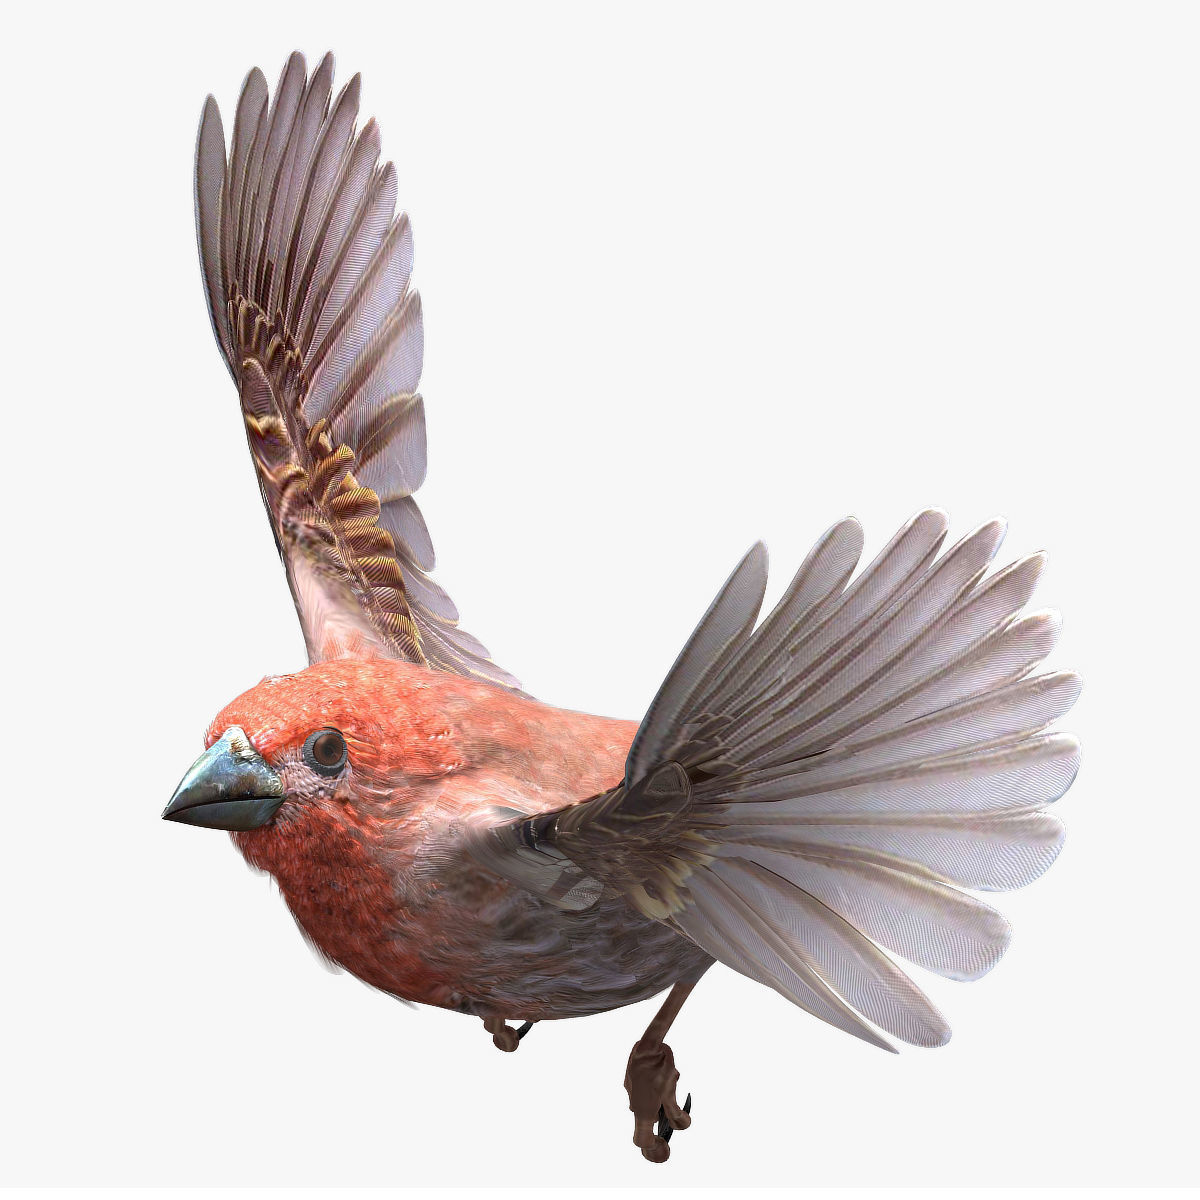 House finch - rigged - animated